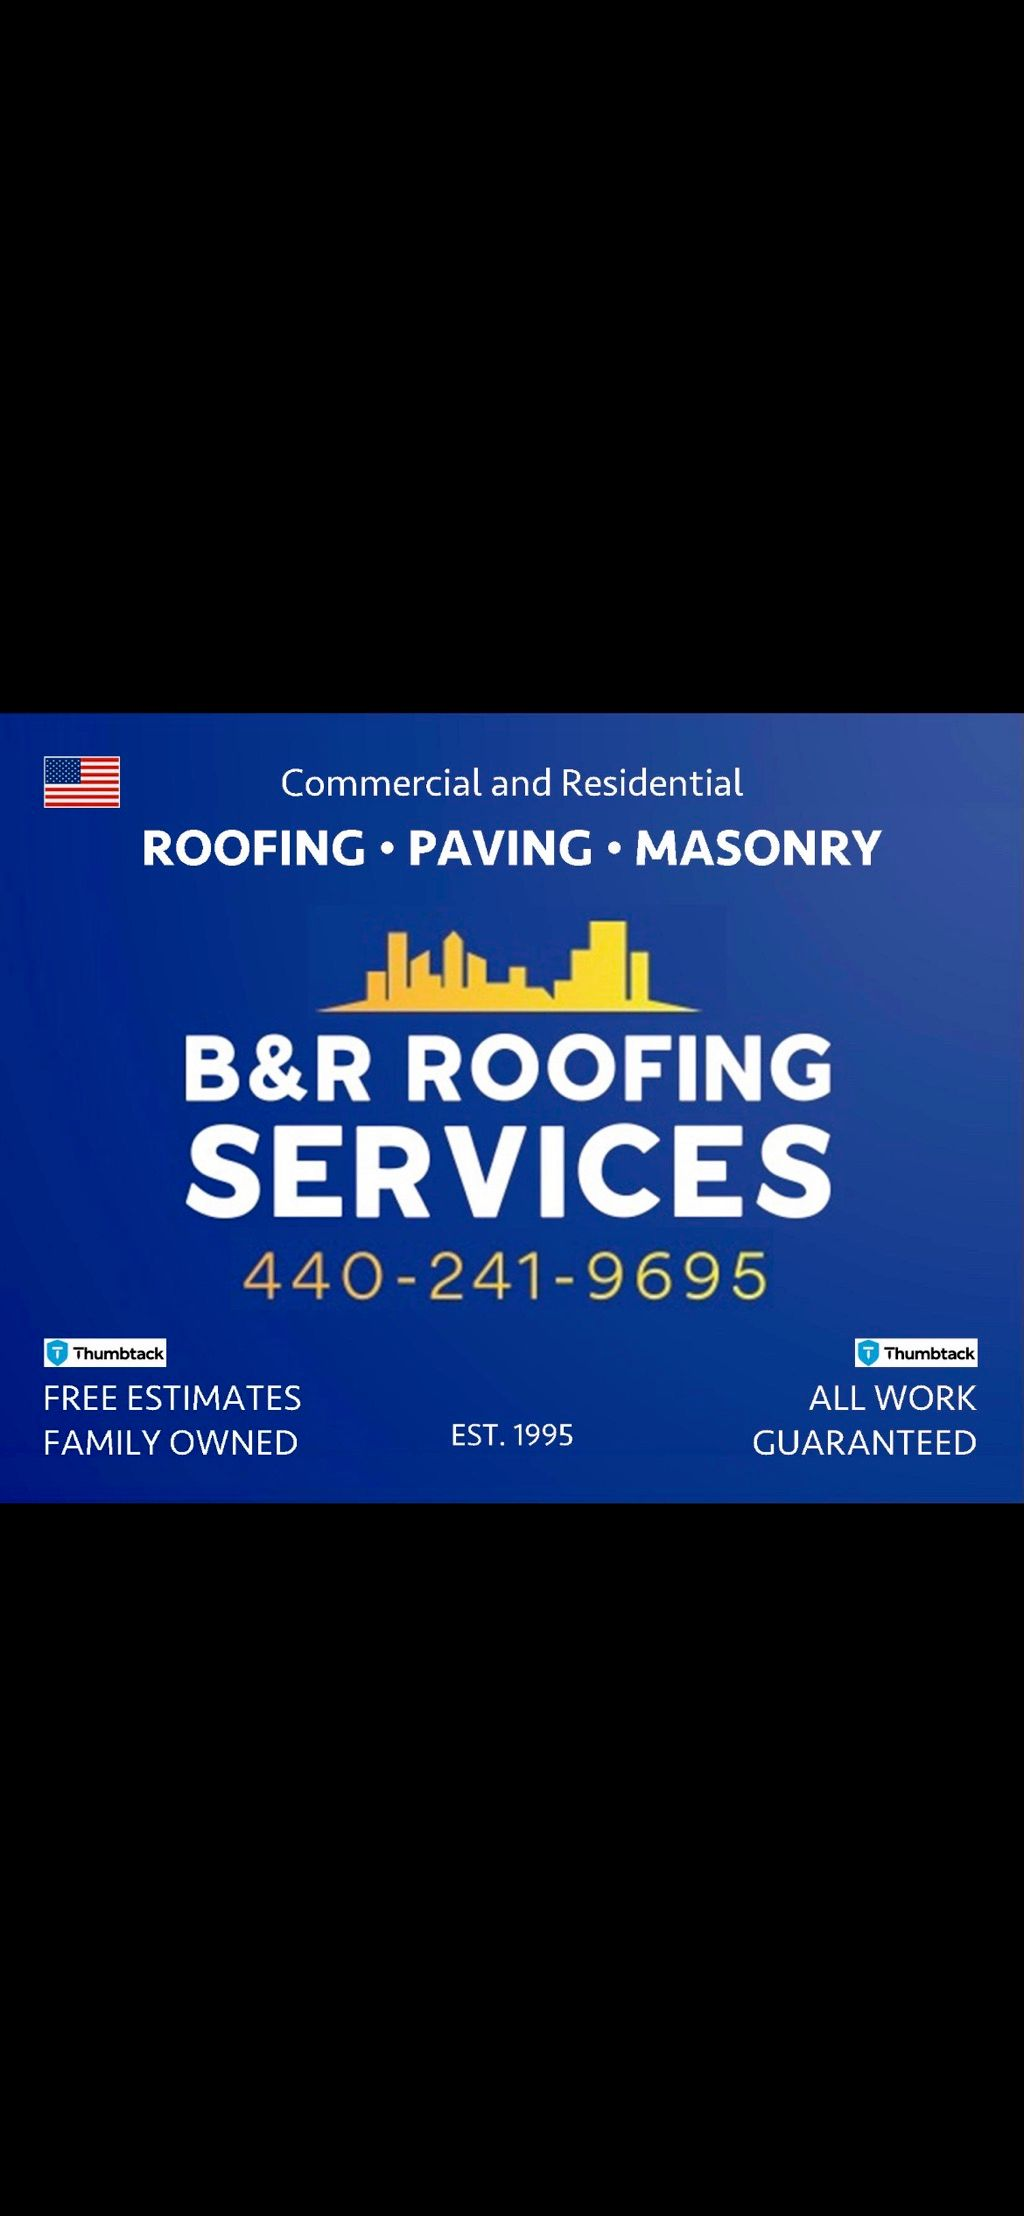 B&R roofing services